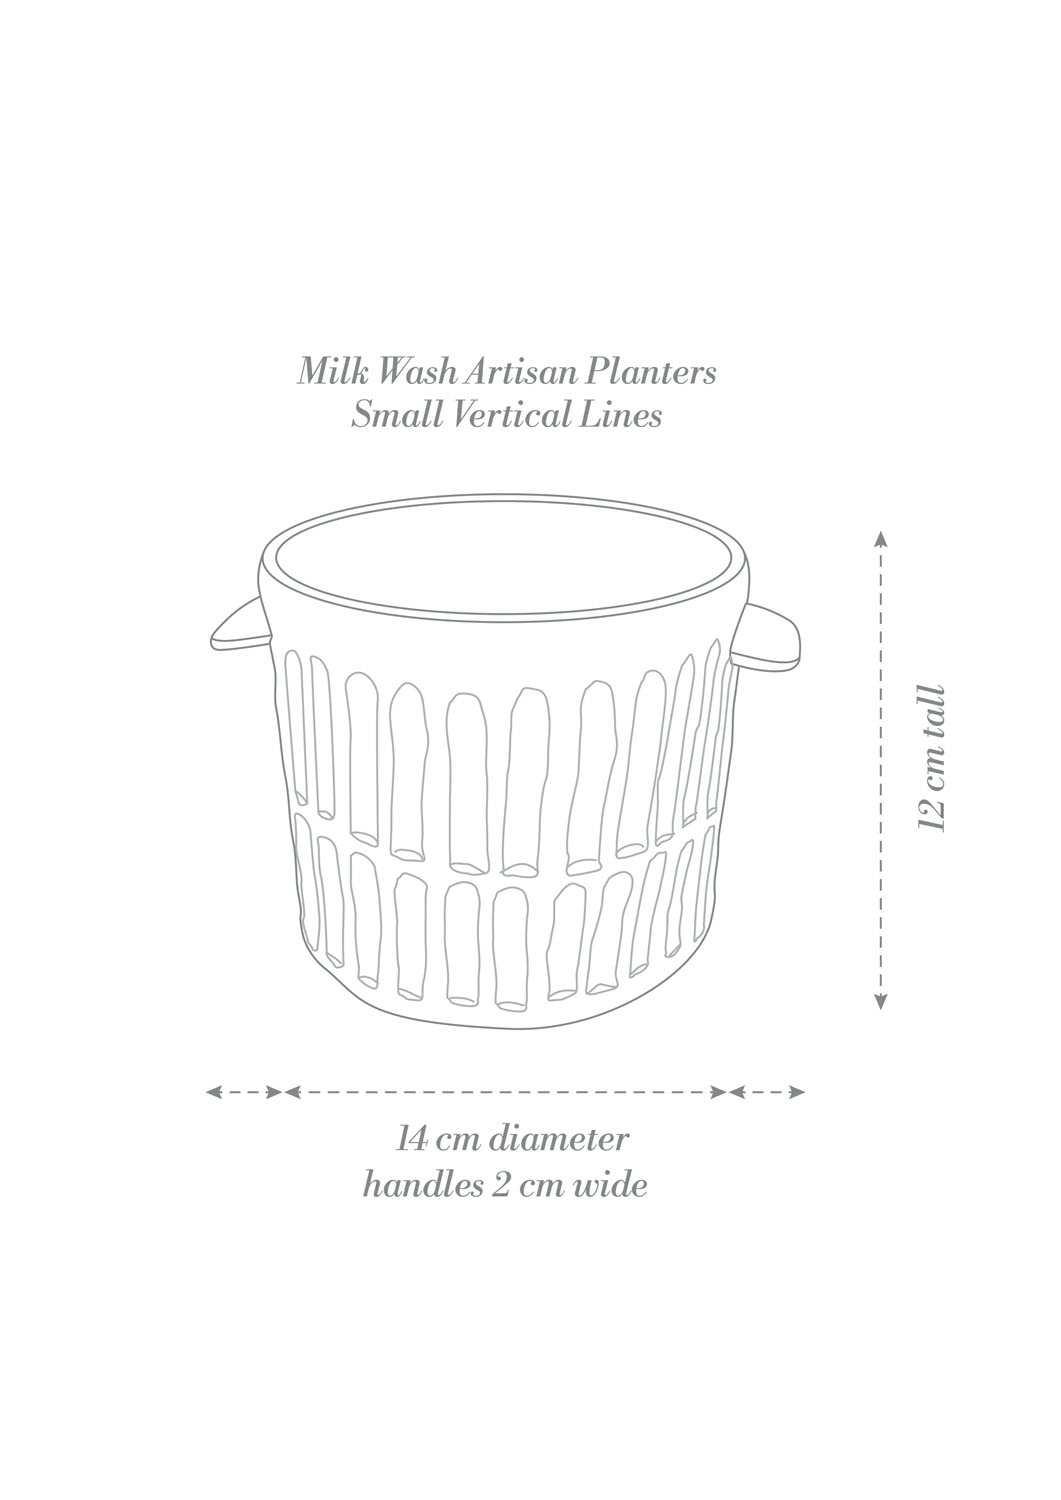 Angus & Celeste Milk Wash Artisan Planter Small Vertical Lines Product Diagram